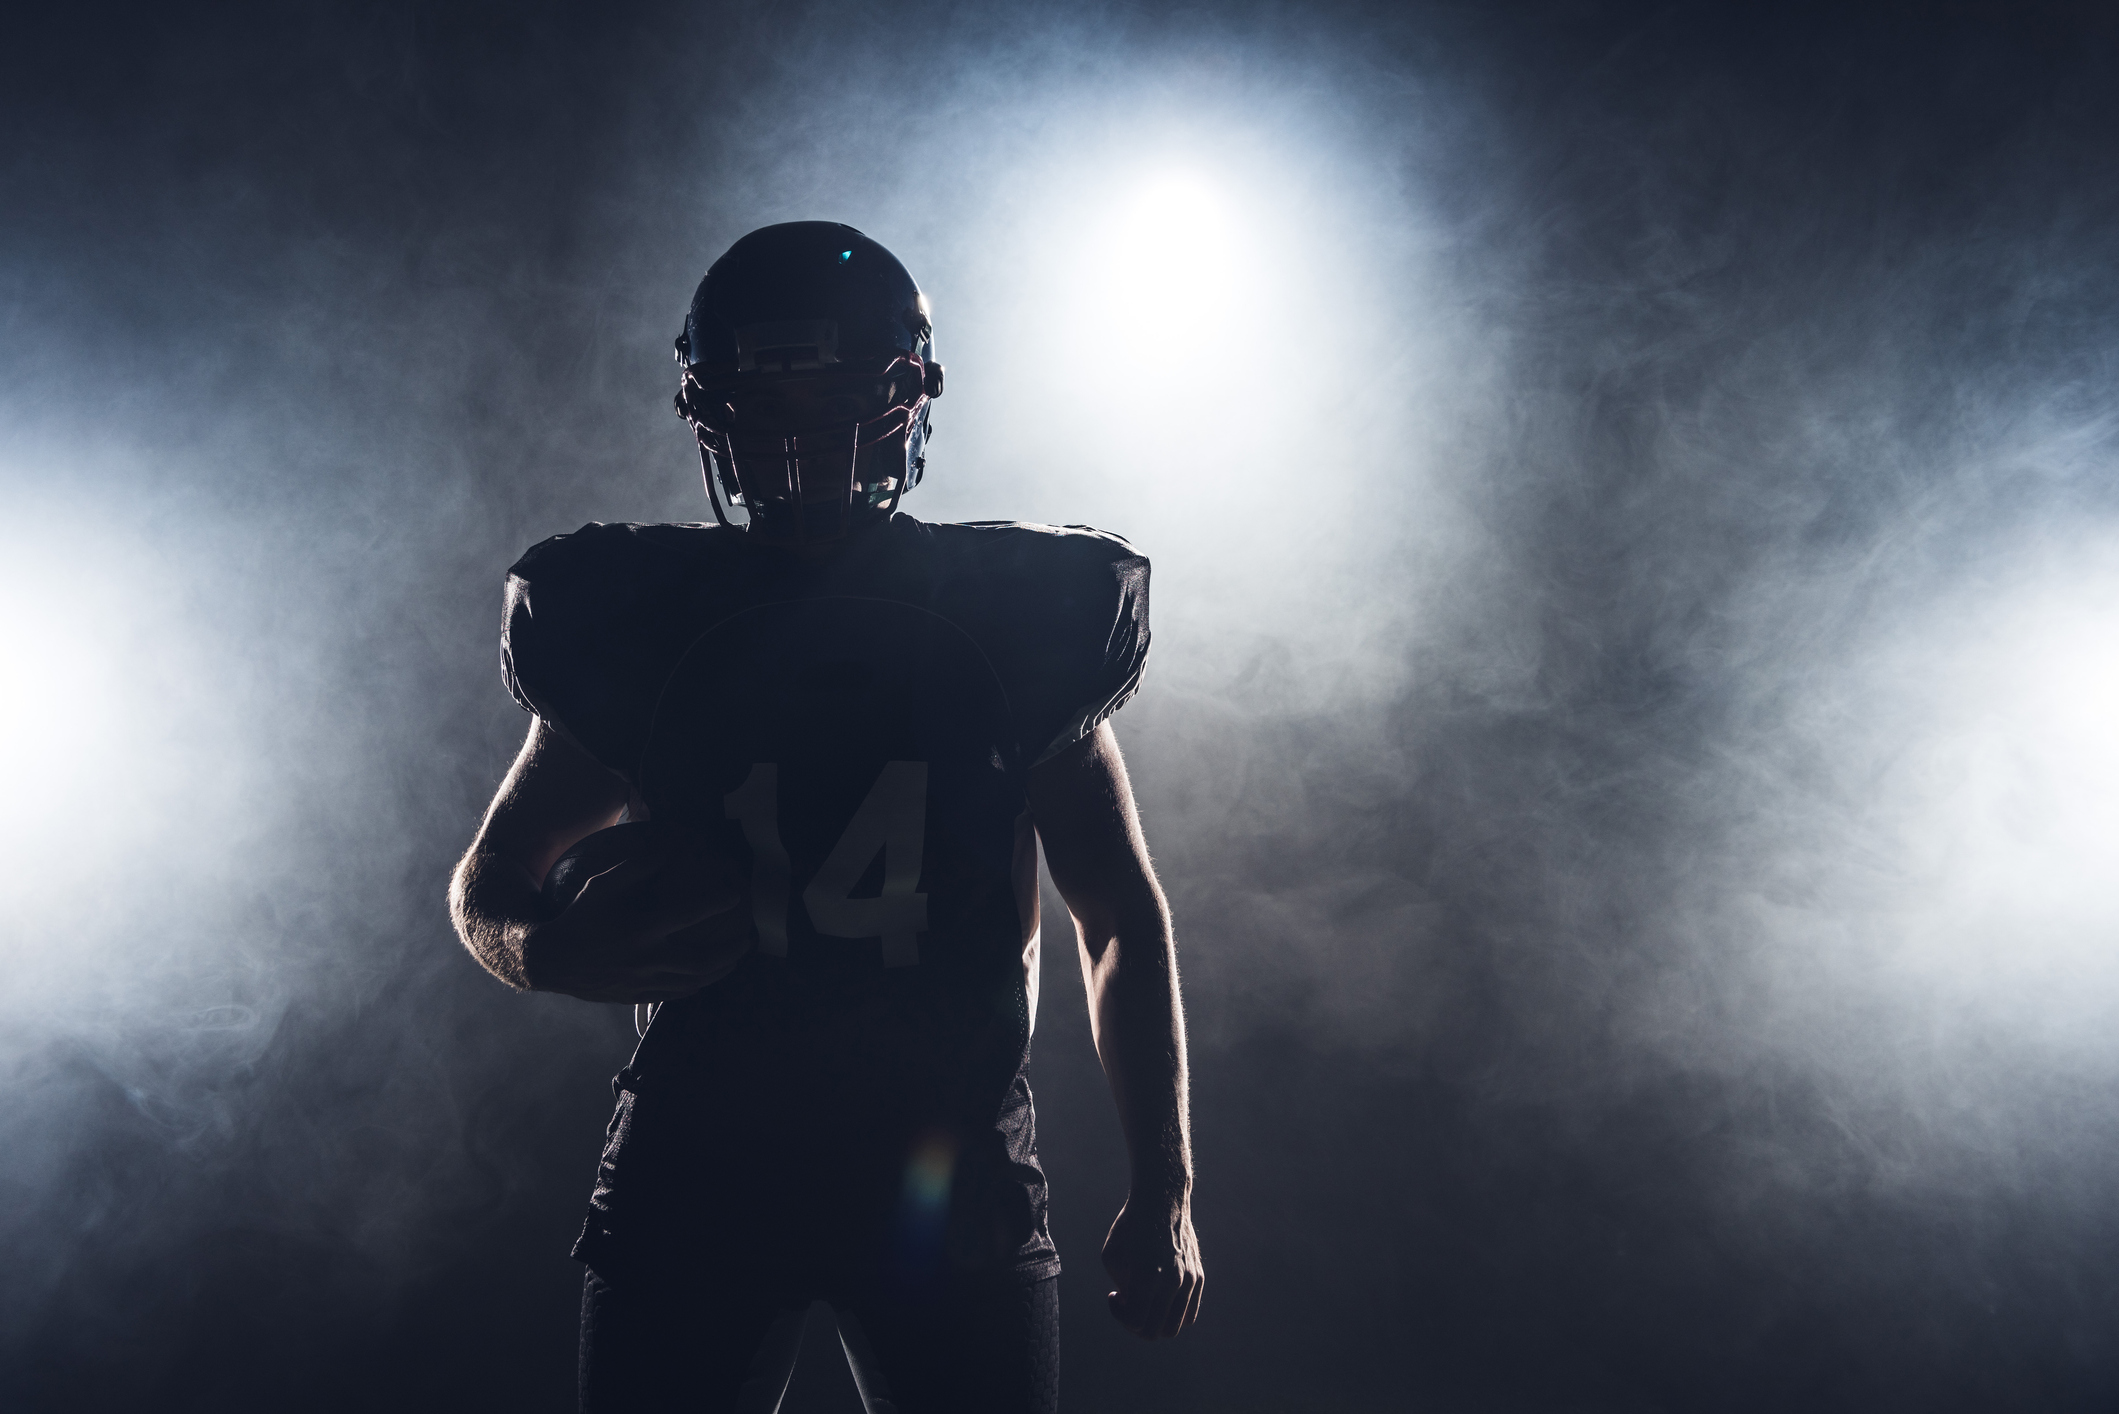 The silhouette of a football player in pads and a helmet holding a football.